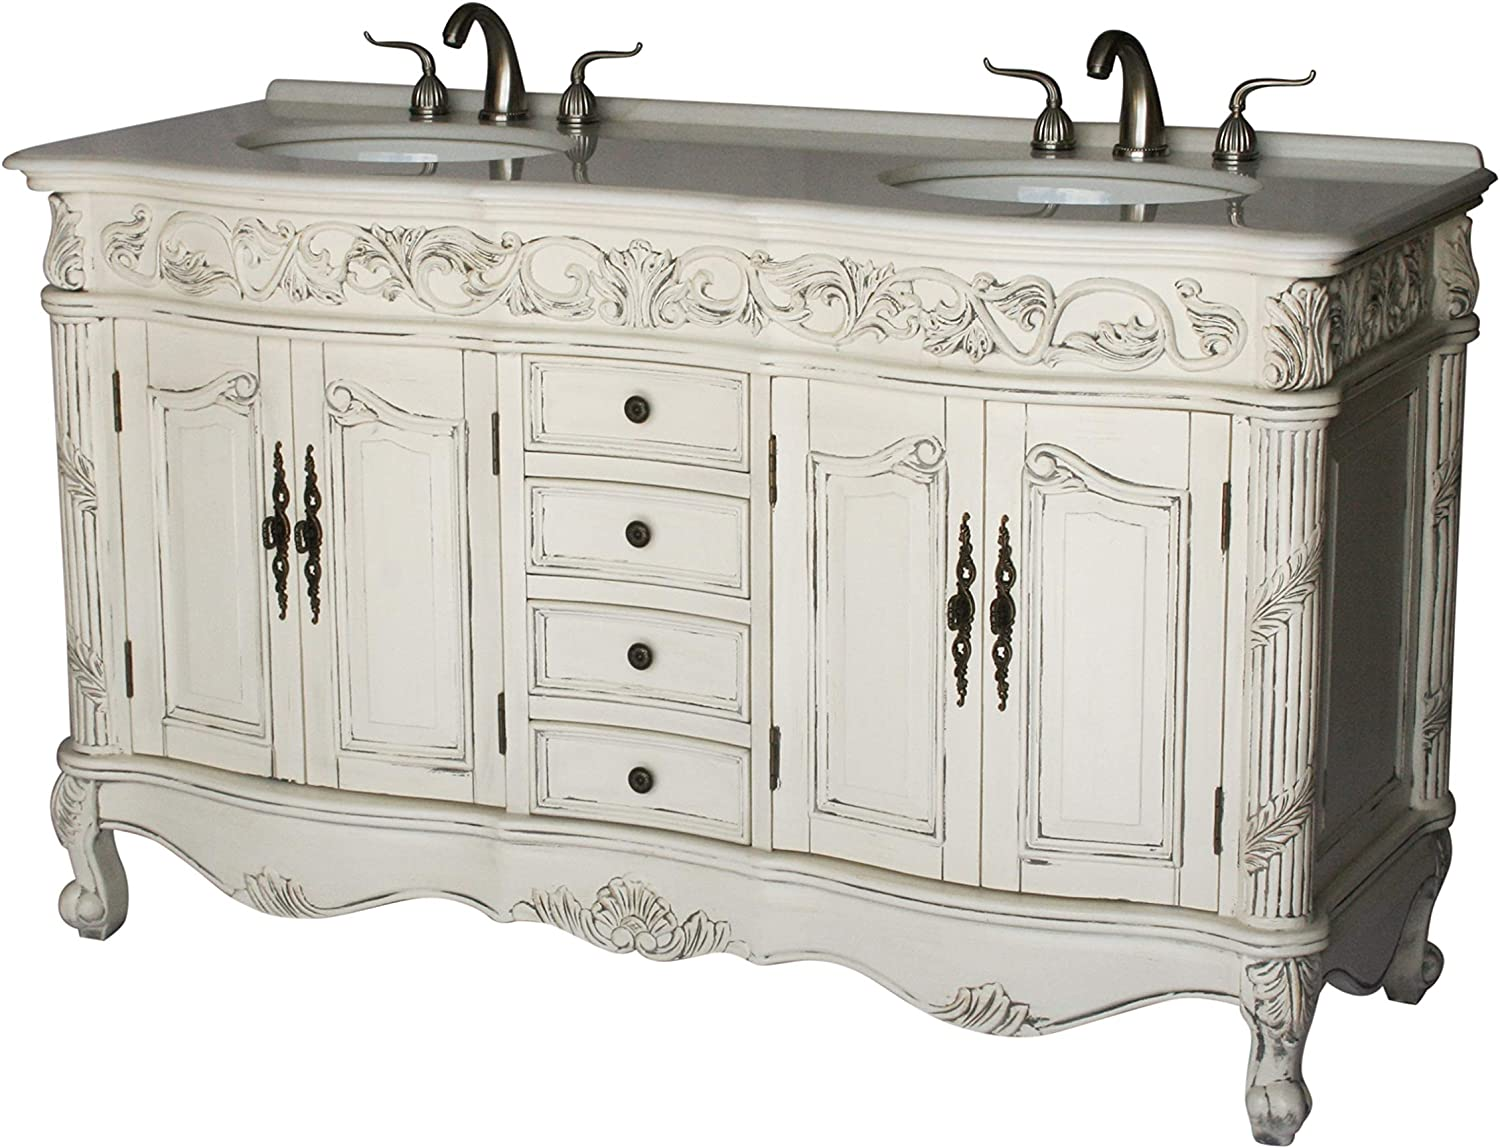 Amazon Com 60 Inch Antique Style Double Sink Bathroom Vanity Model 7660 B Kitchen Dining